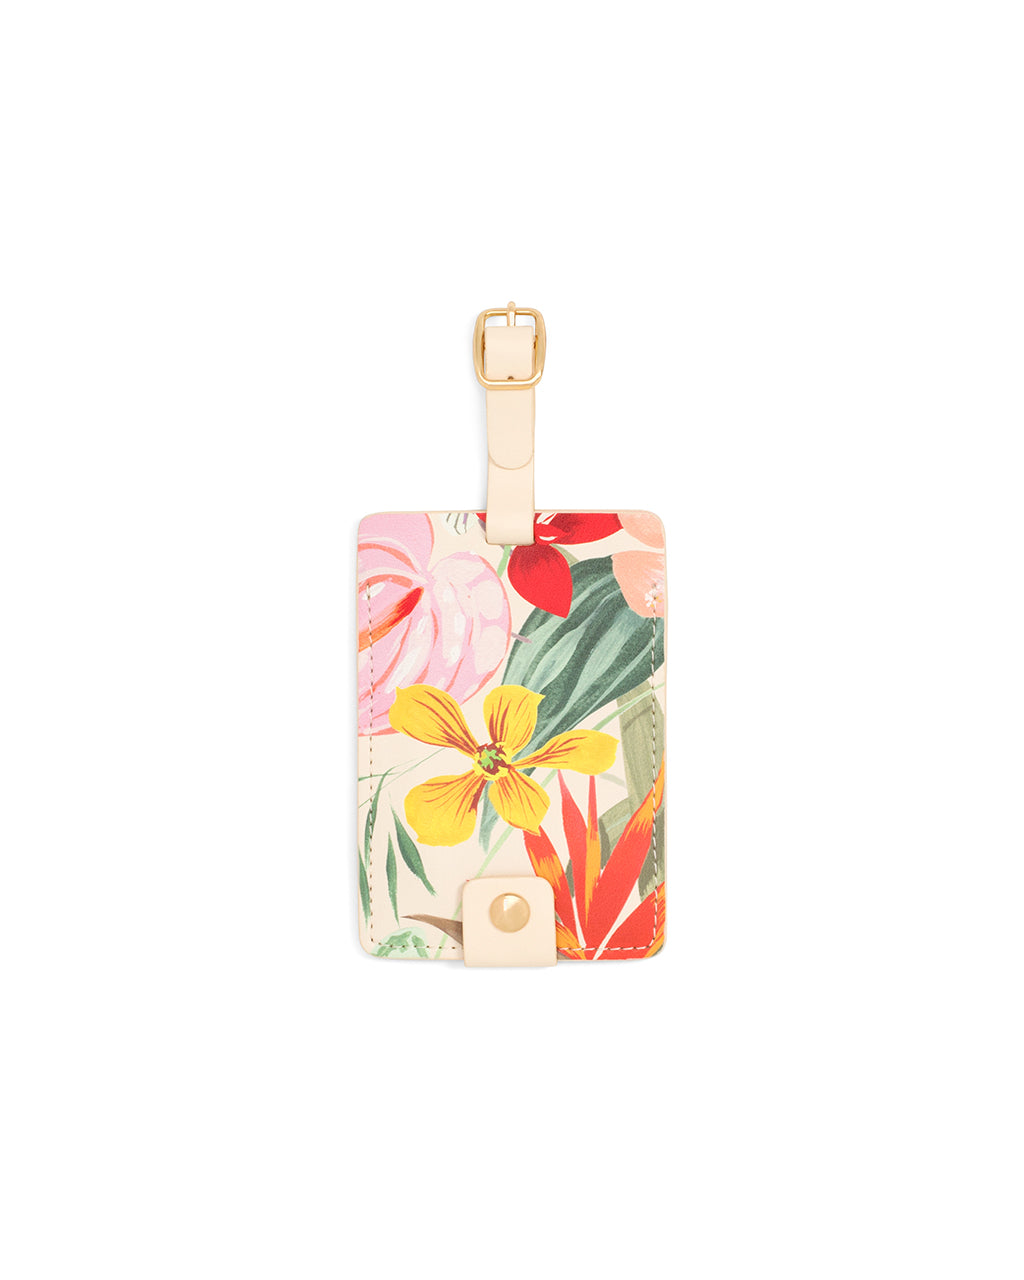 This Getaway Luggage Tag comes in a colorful floral pattern designed by Helen Dealtry and Katy Jones.